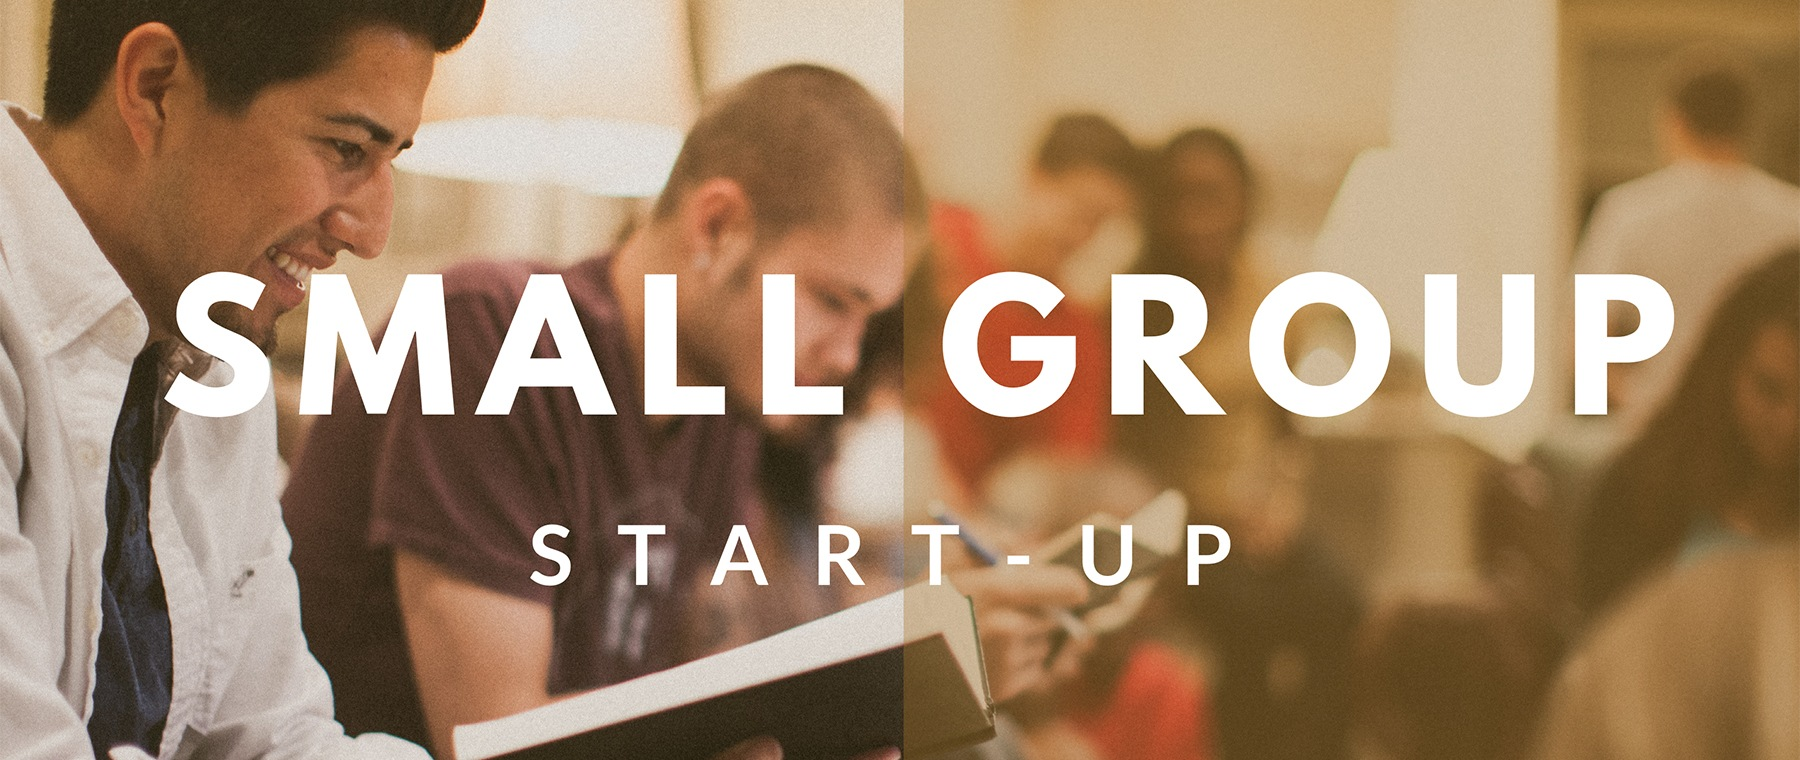 Small Group Start Up 18